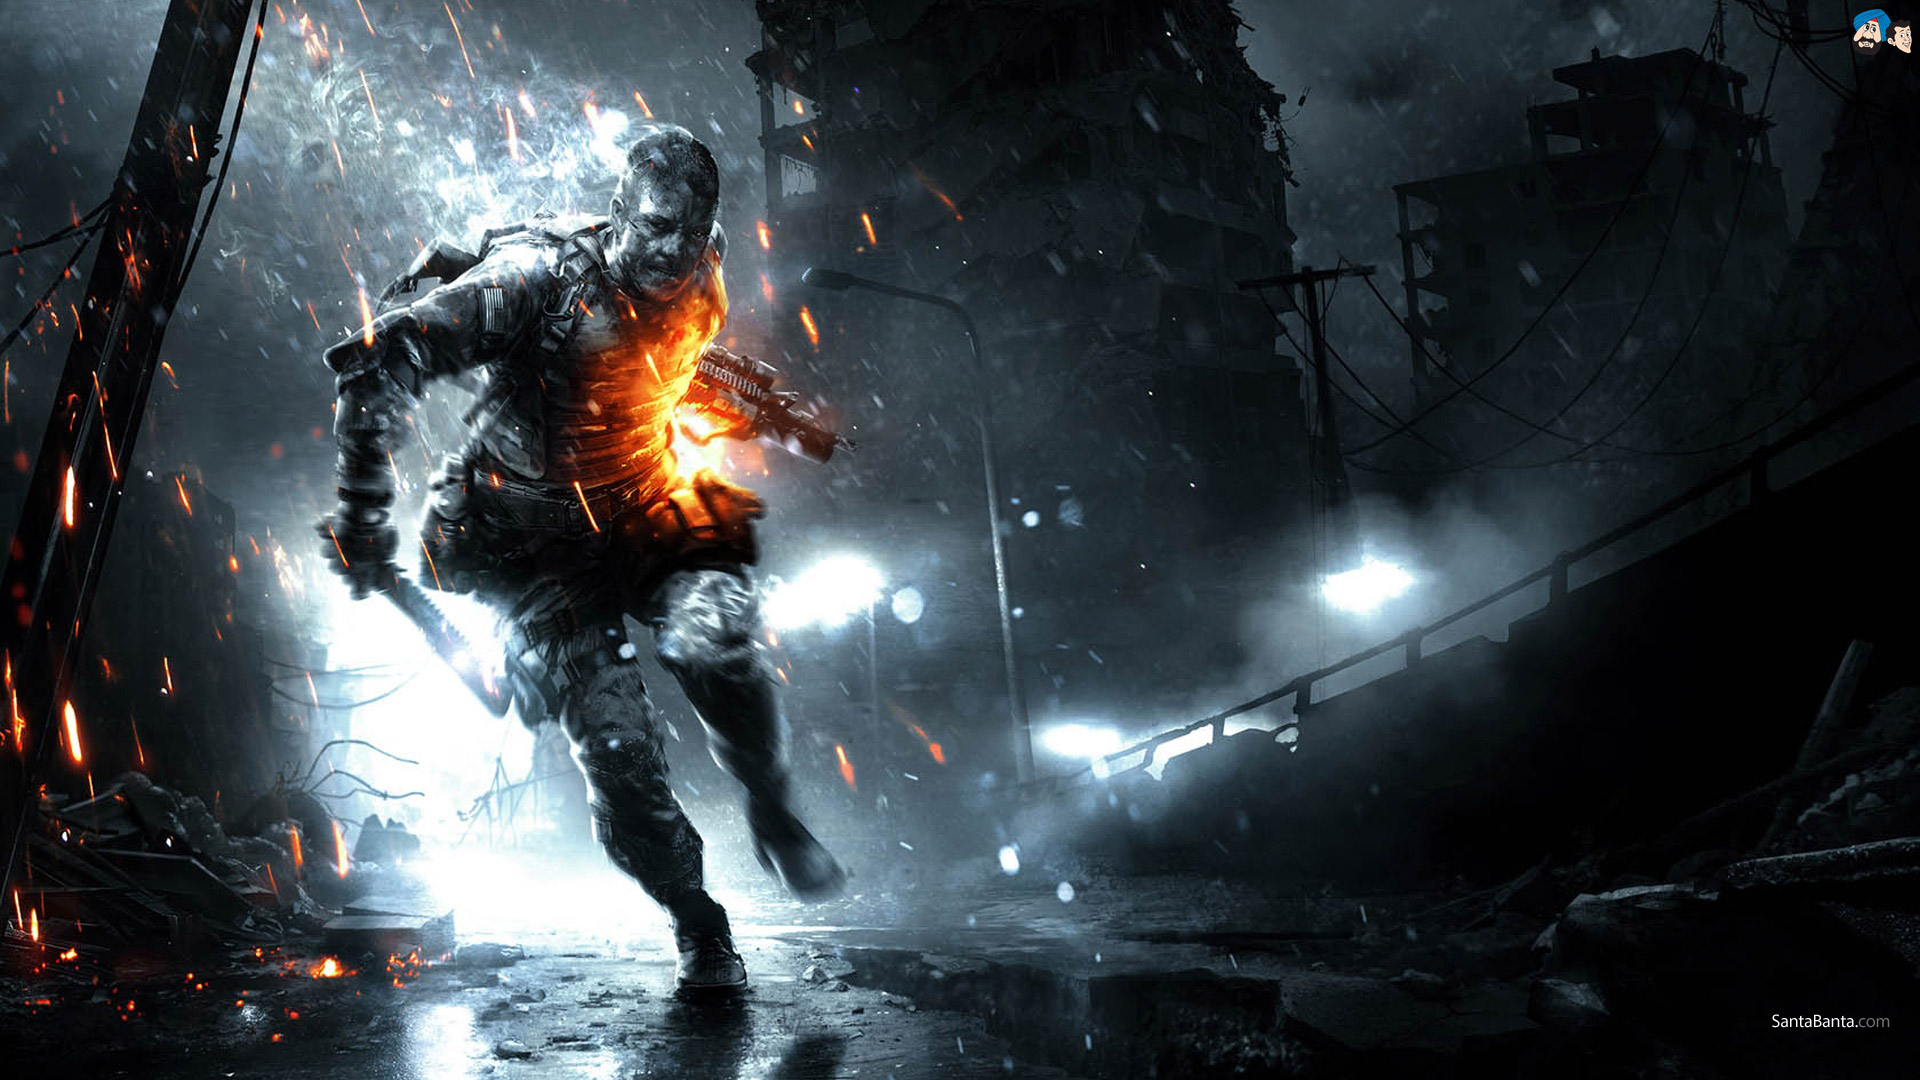 ... file hosting: Battlefield 3 Aftermath , Games , 1920x1080 , Wallpapers